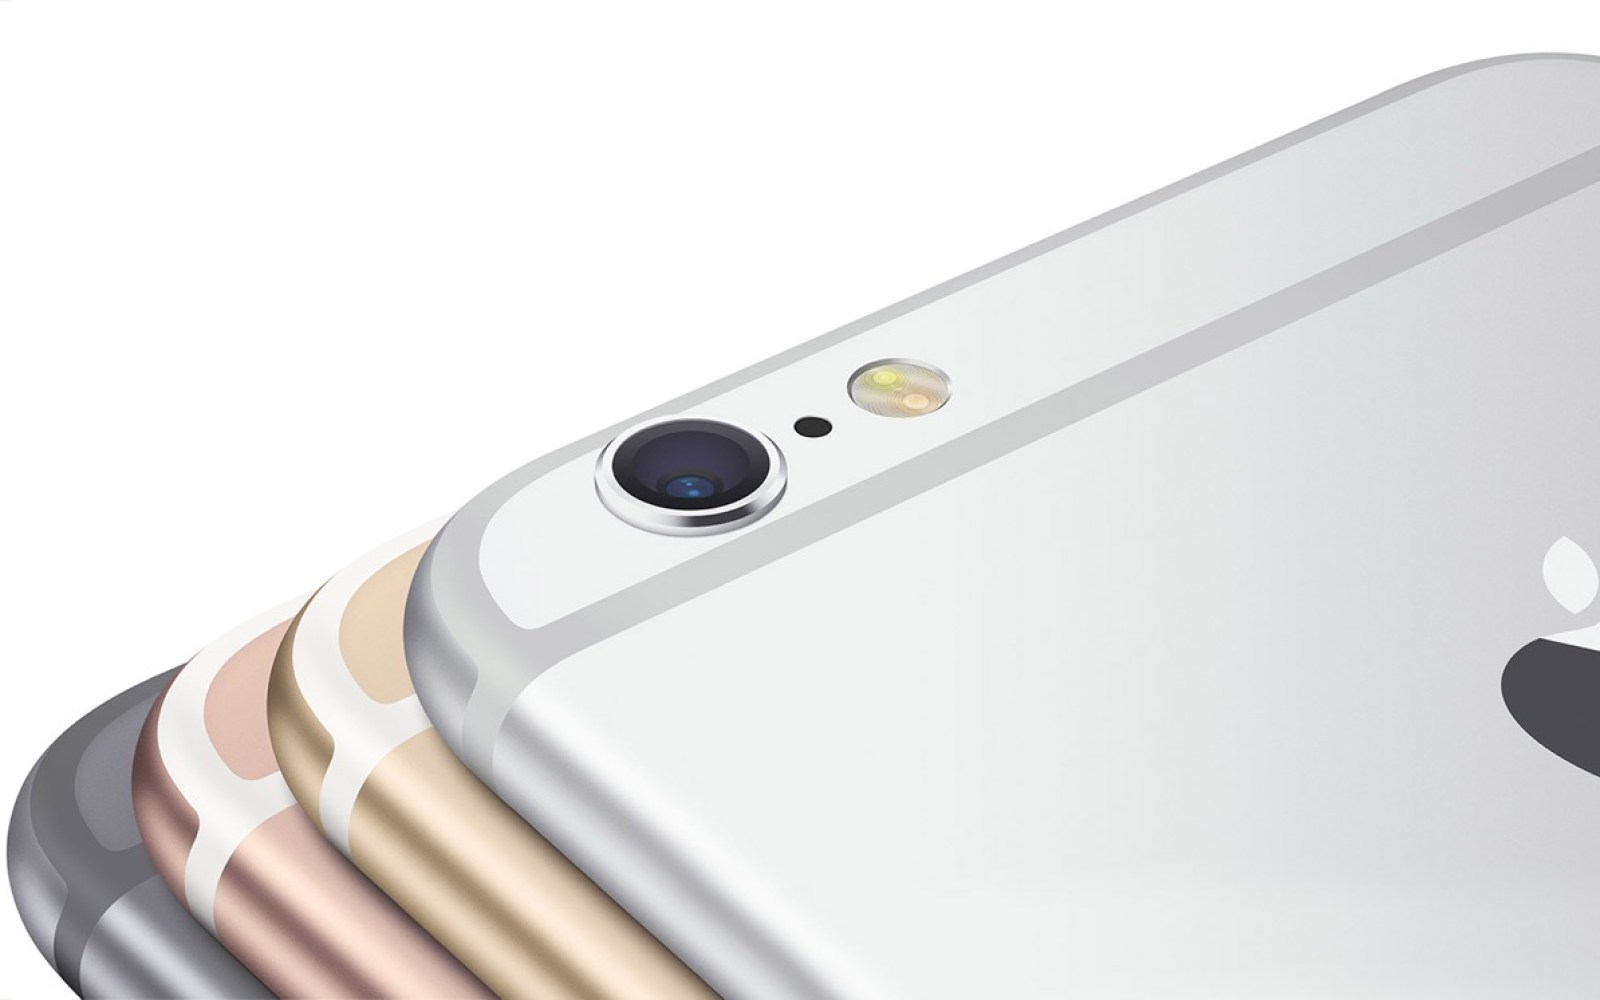 KGI: Top 11 new iPhone features for 2015 include Rose Gold option, Force Touch, 12MP Camera, 2GB RAM, more